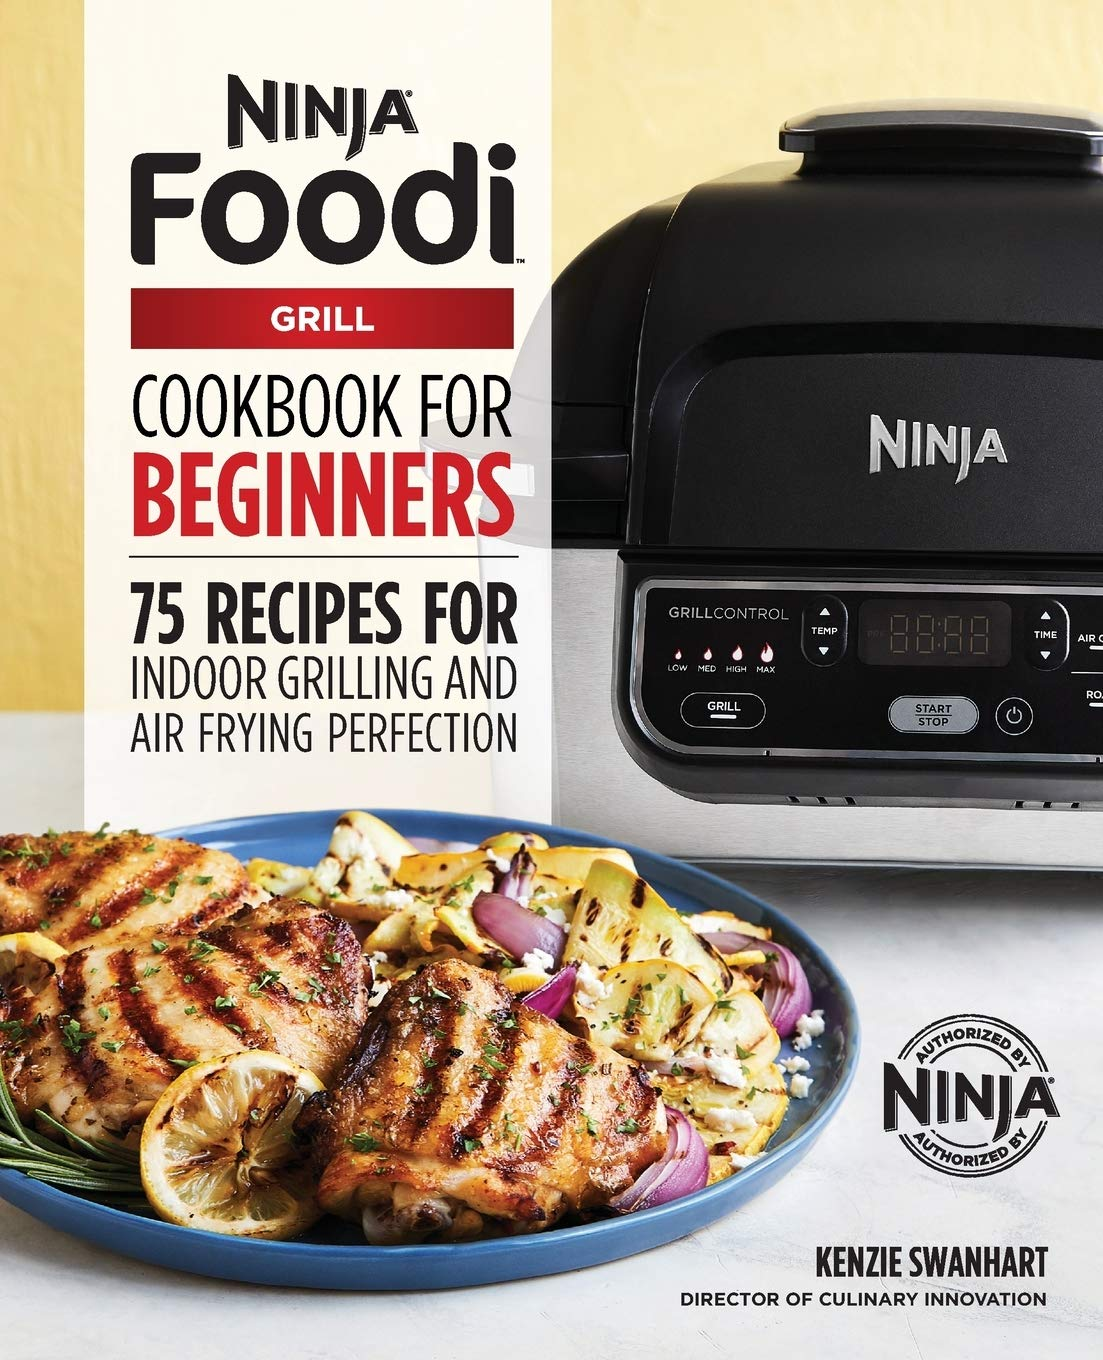 Best Indoor Grill 2020.The Official Ninja Foodi Grill Cookbook For Beginners 75